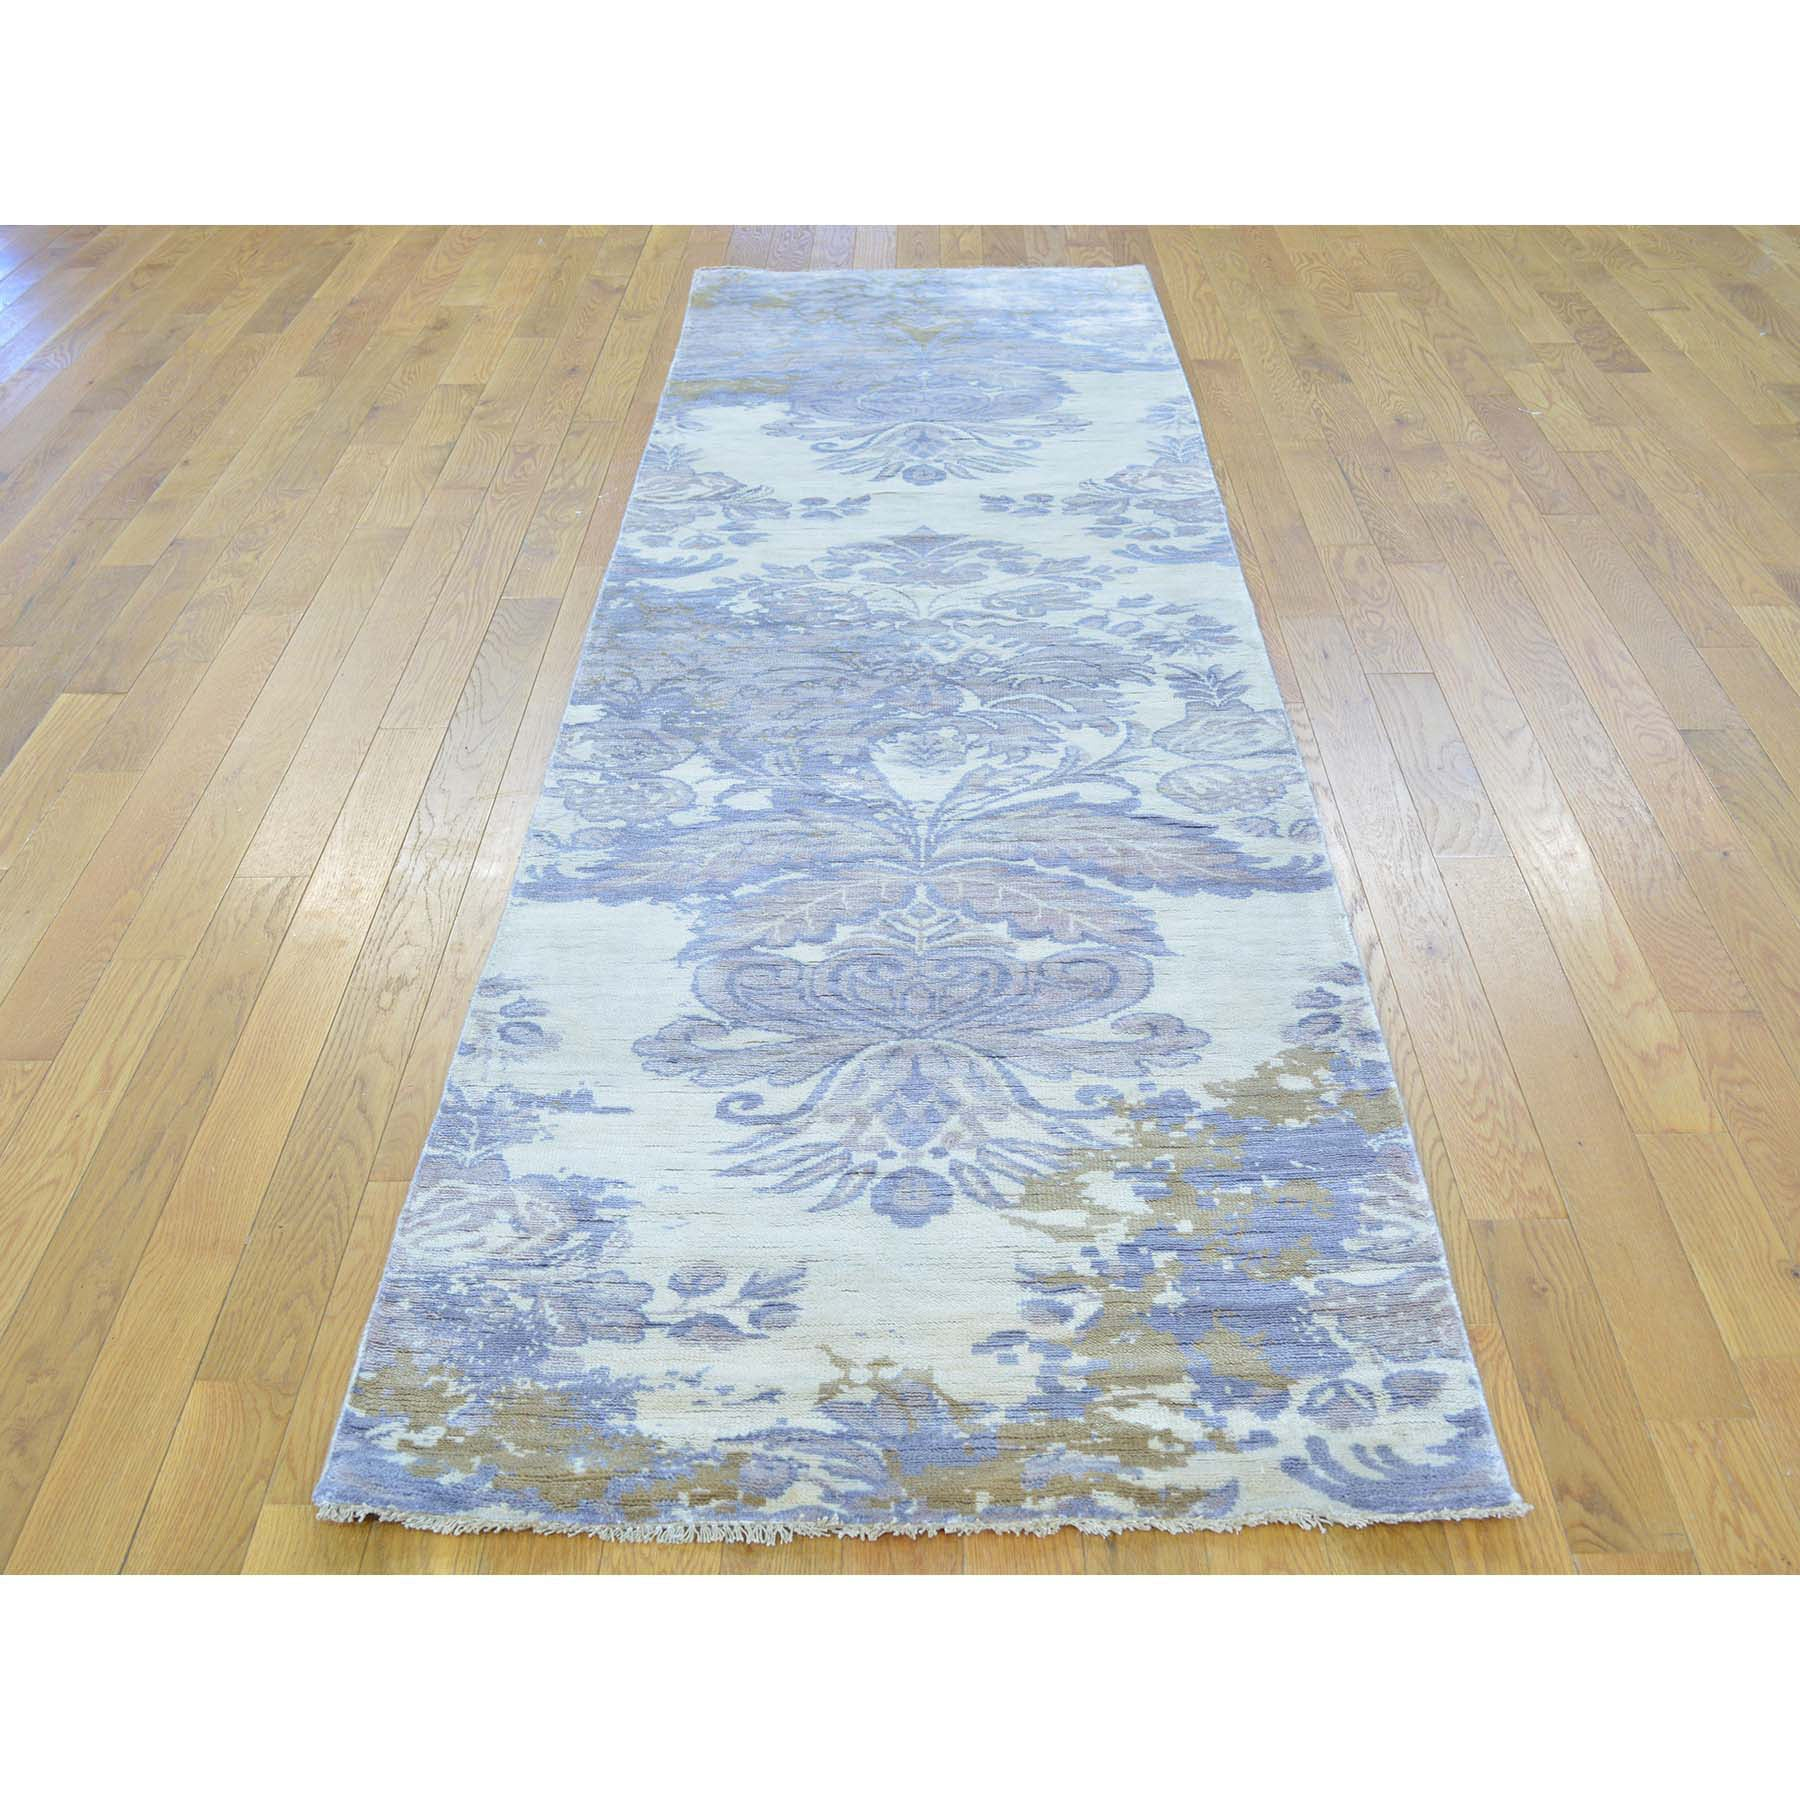 "Handmade Modern and Contemporary Runner Rug > Design# SH27454 > Size: 2'-9"" x 9'-7"" [ONLINE ONLY]"